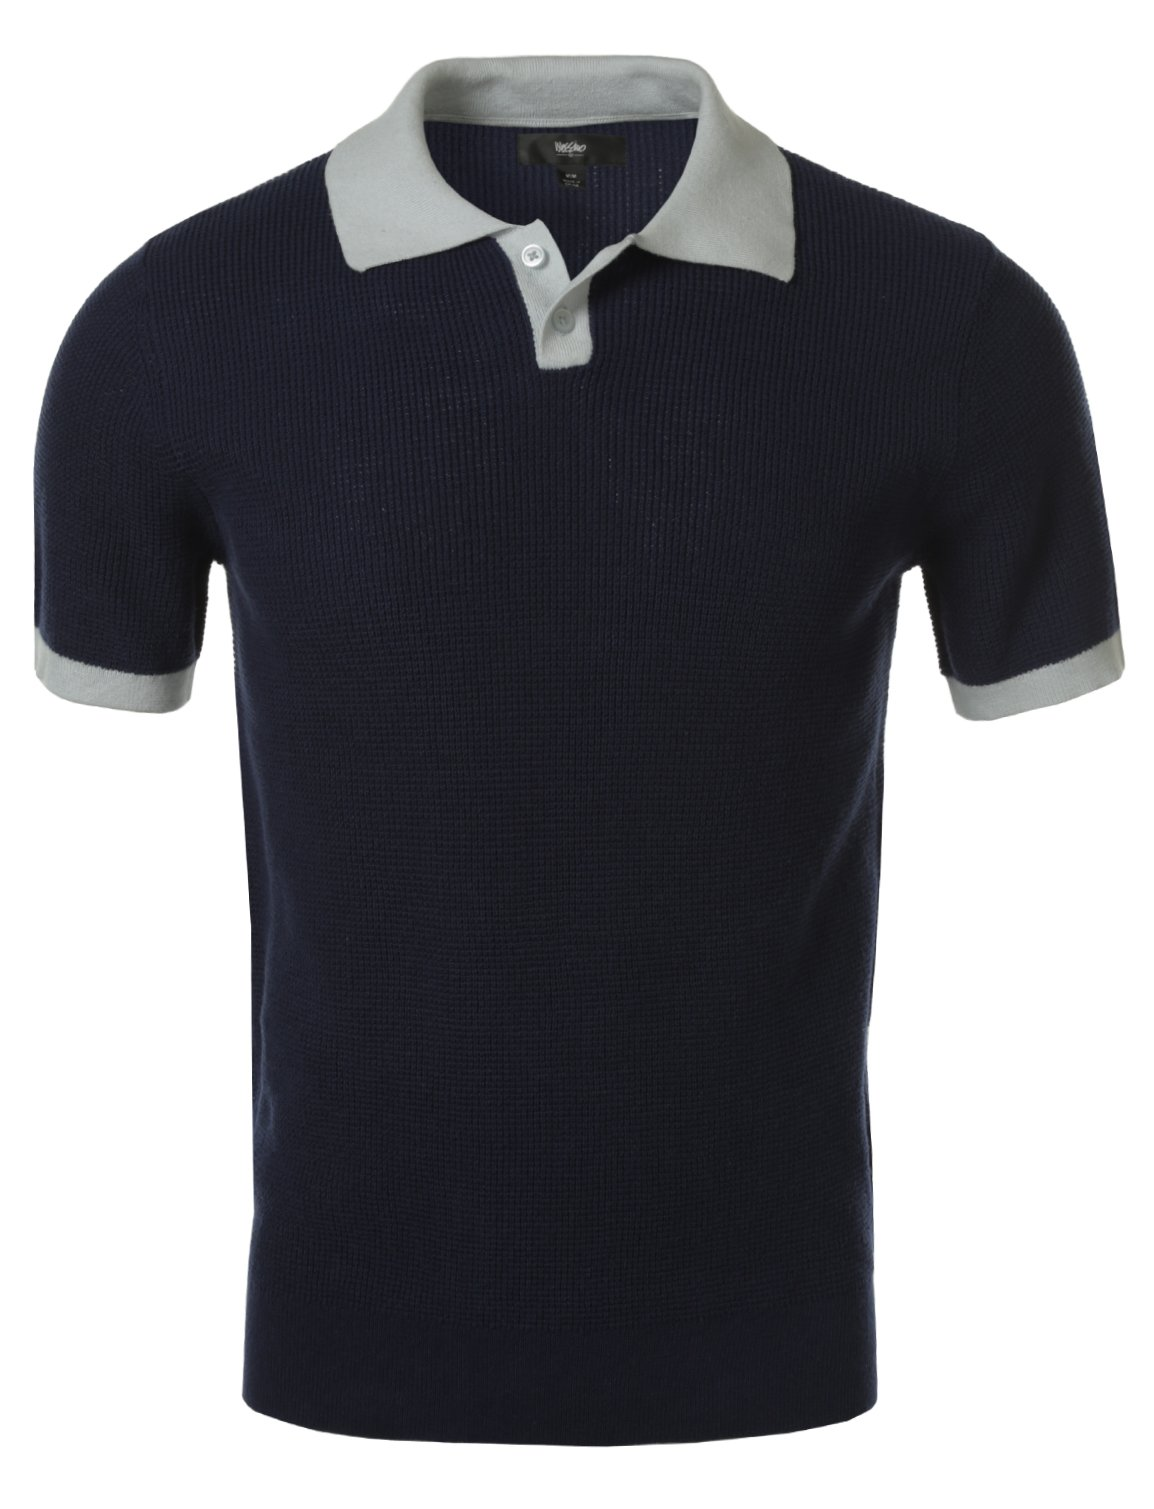 Mossimo Men's Pullover Polo Sweater with Contrast Collar Navy XL